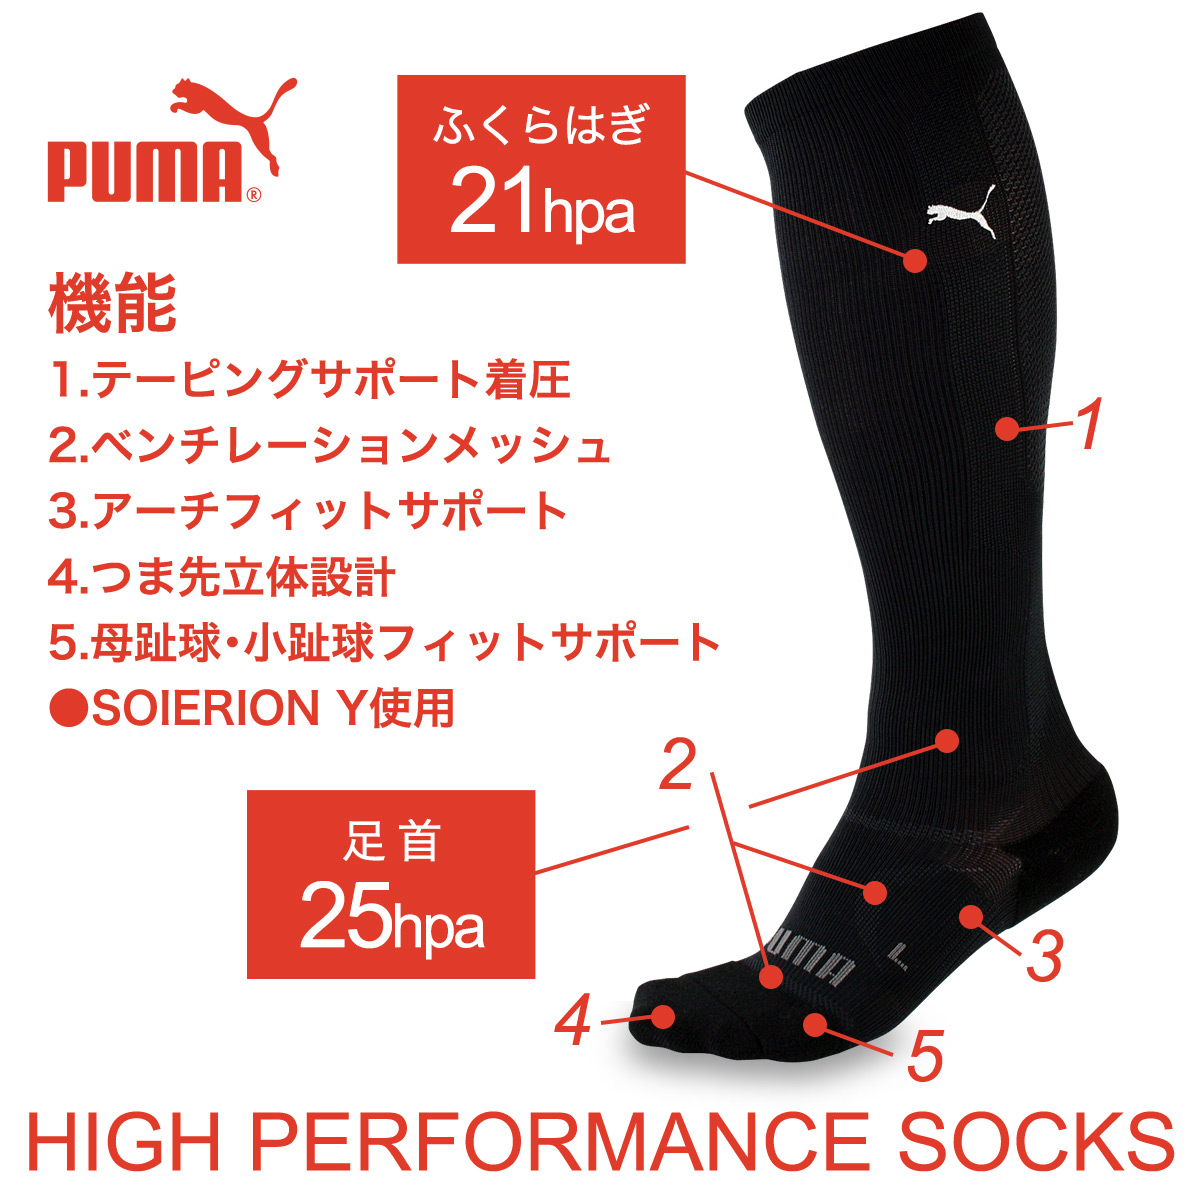 """PUMA - Unisex Outdoor/Sport Knee-High Socks / Strong Compression / 3D Design / Arch Fit Support / Quick Dry """"SOIERION"""" Fabric / puma-216 / Made in Japan / All Items - Point x 10 !!"""